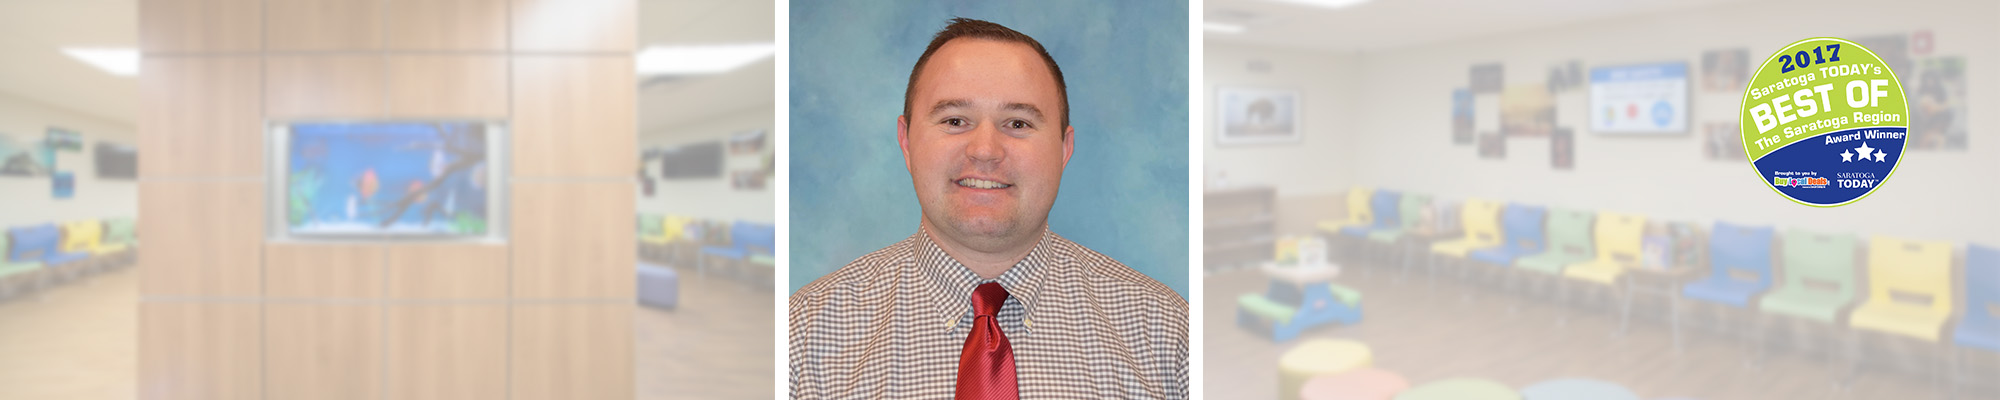 Zachary Gleason, FNP Joins Community Care Pediatrics - Saratoga